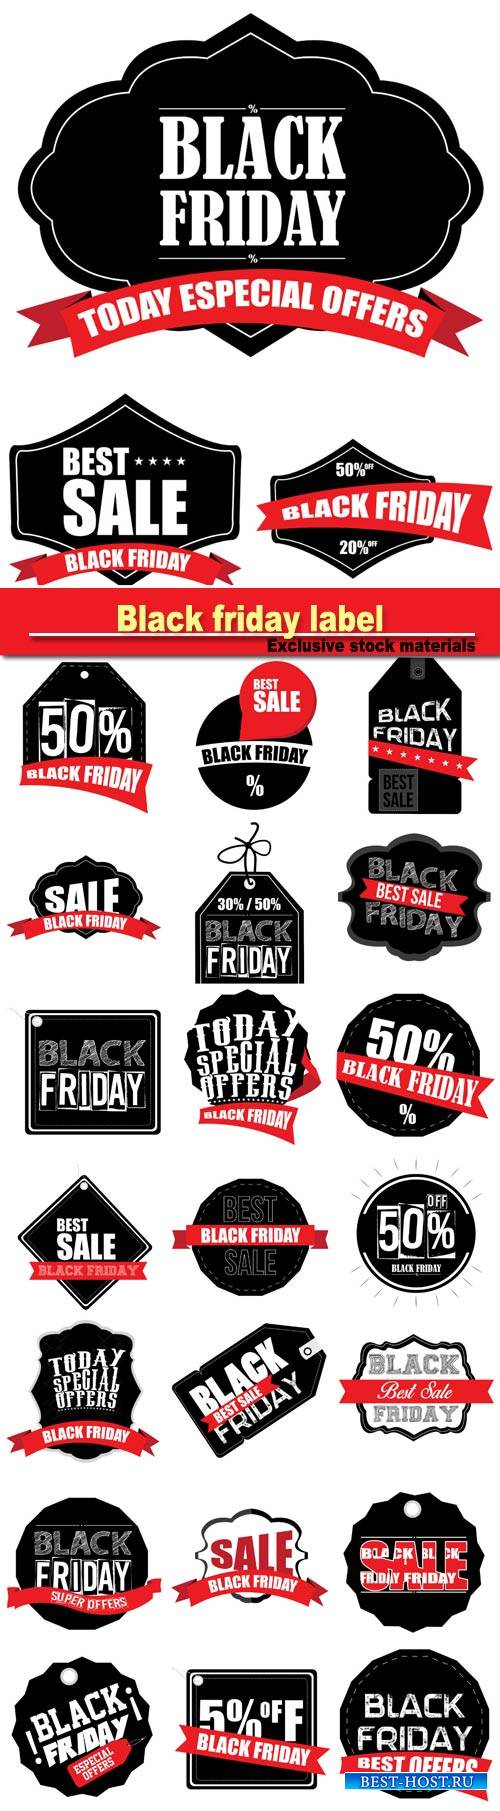 Black friday label